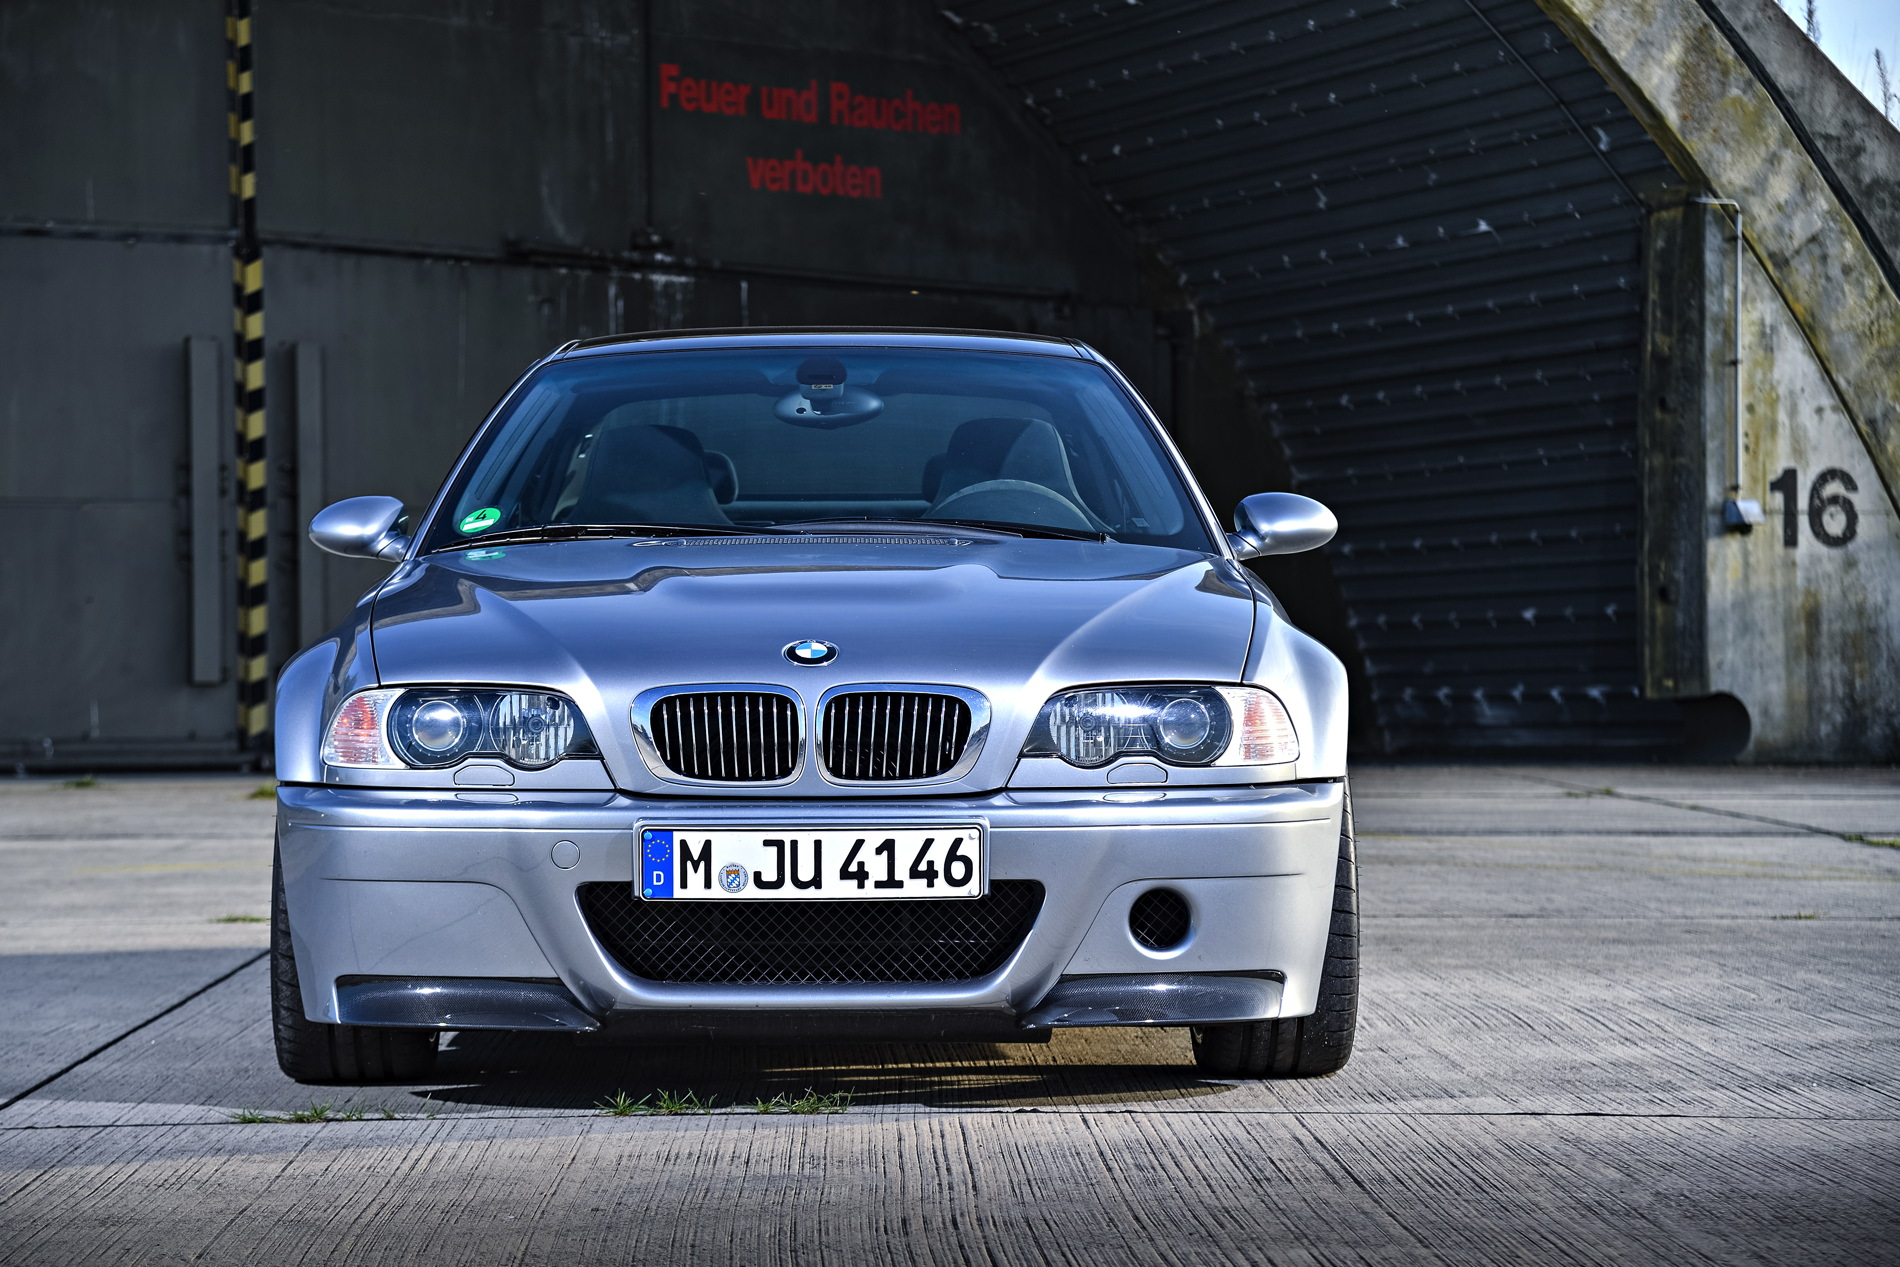 Bmw M3 Convertible >> The One And Only: BMW E46 M3 CSL